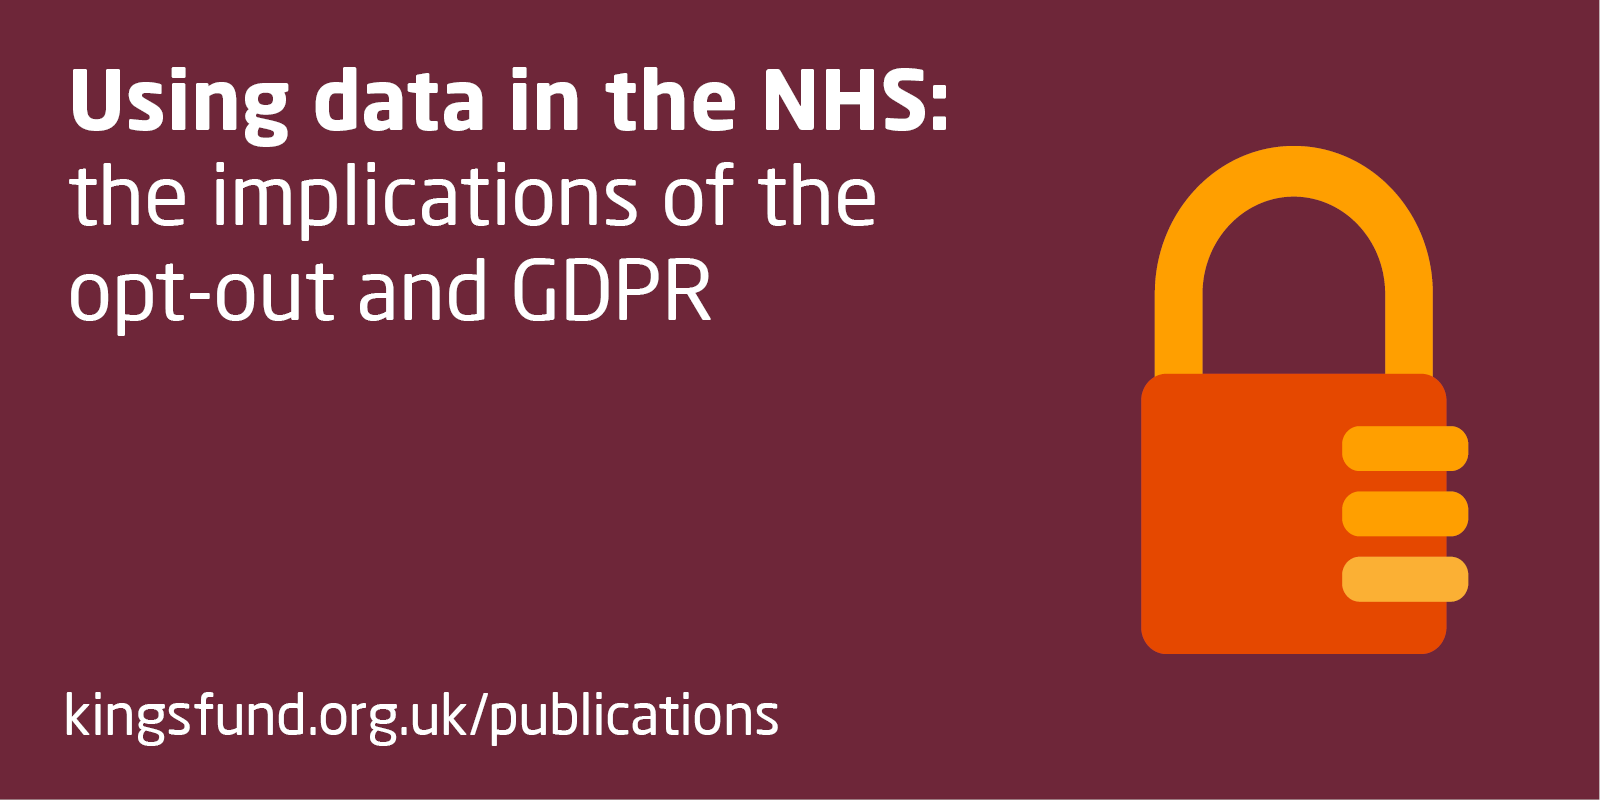 Using data in the NHS: the implications of the opt-out and GDPR